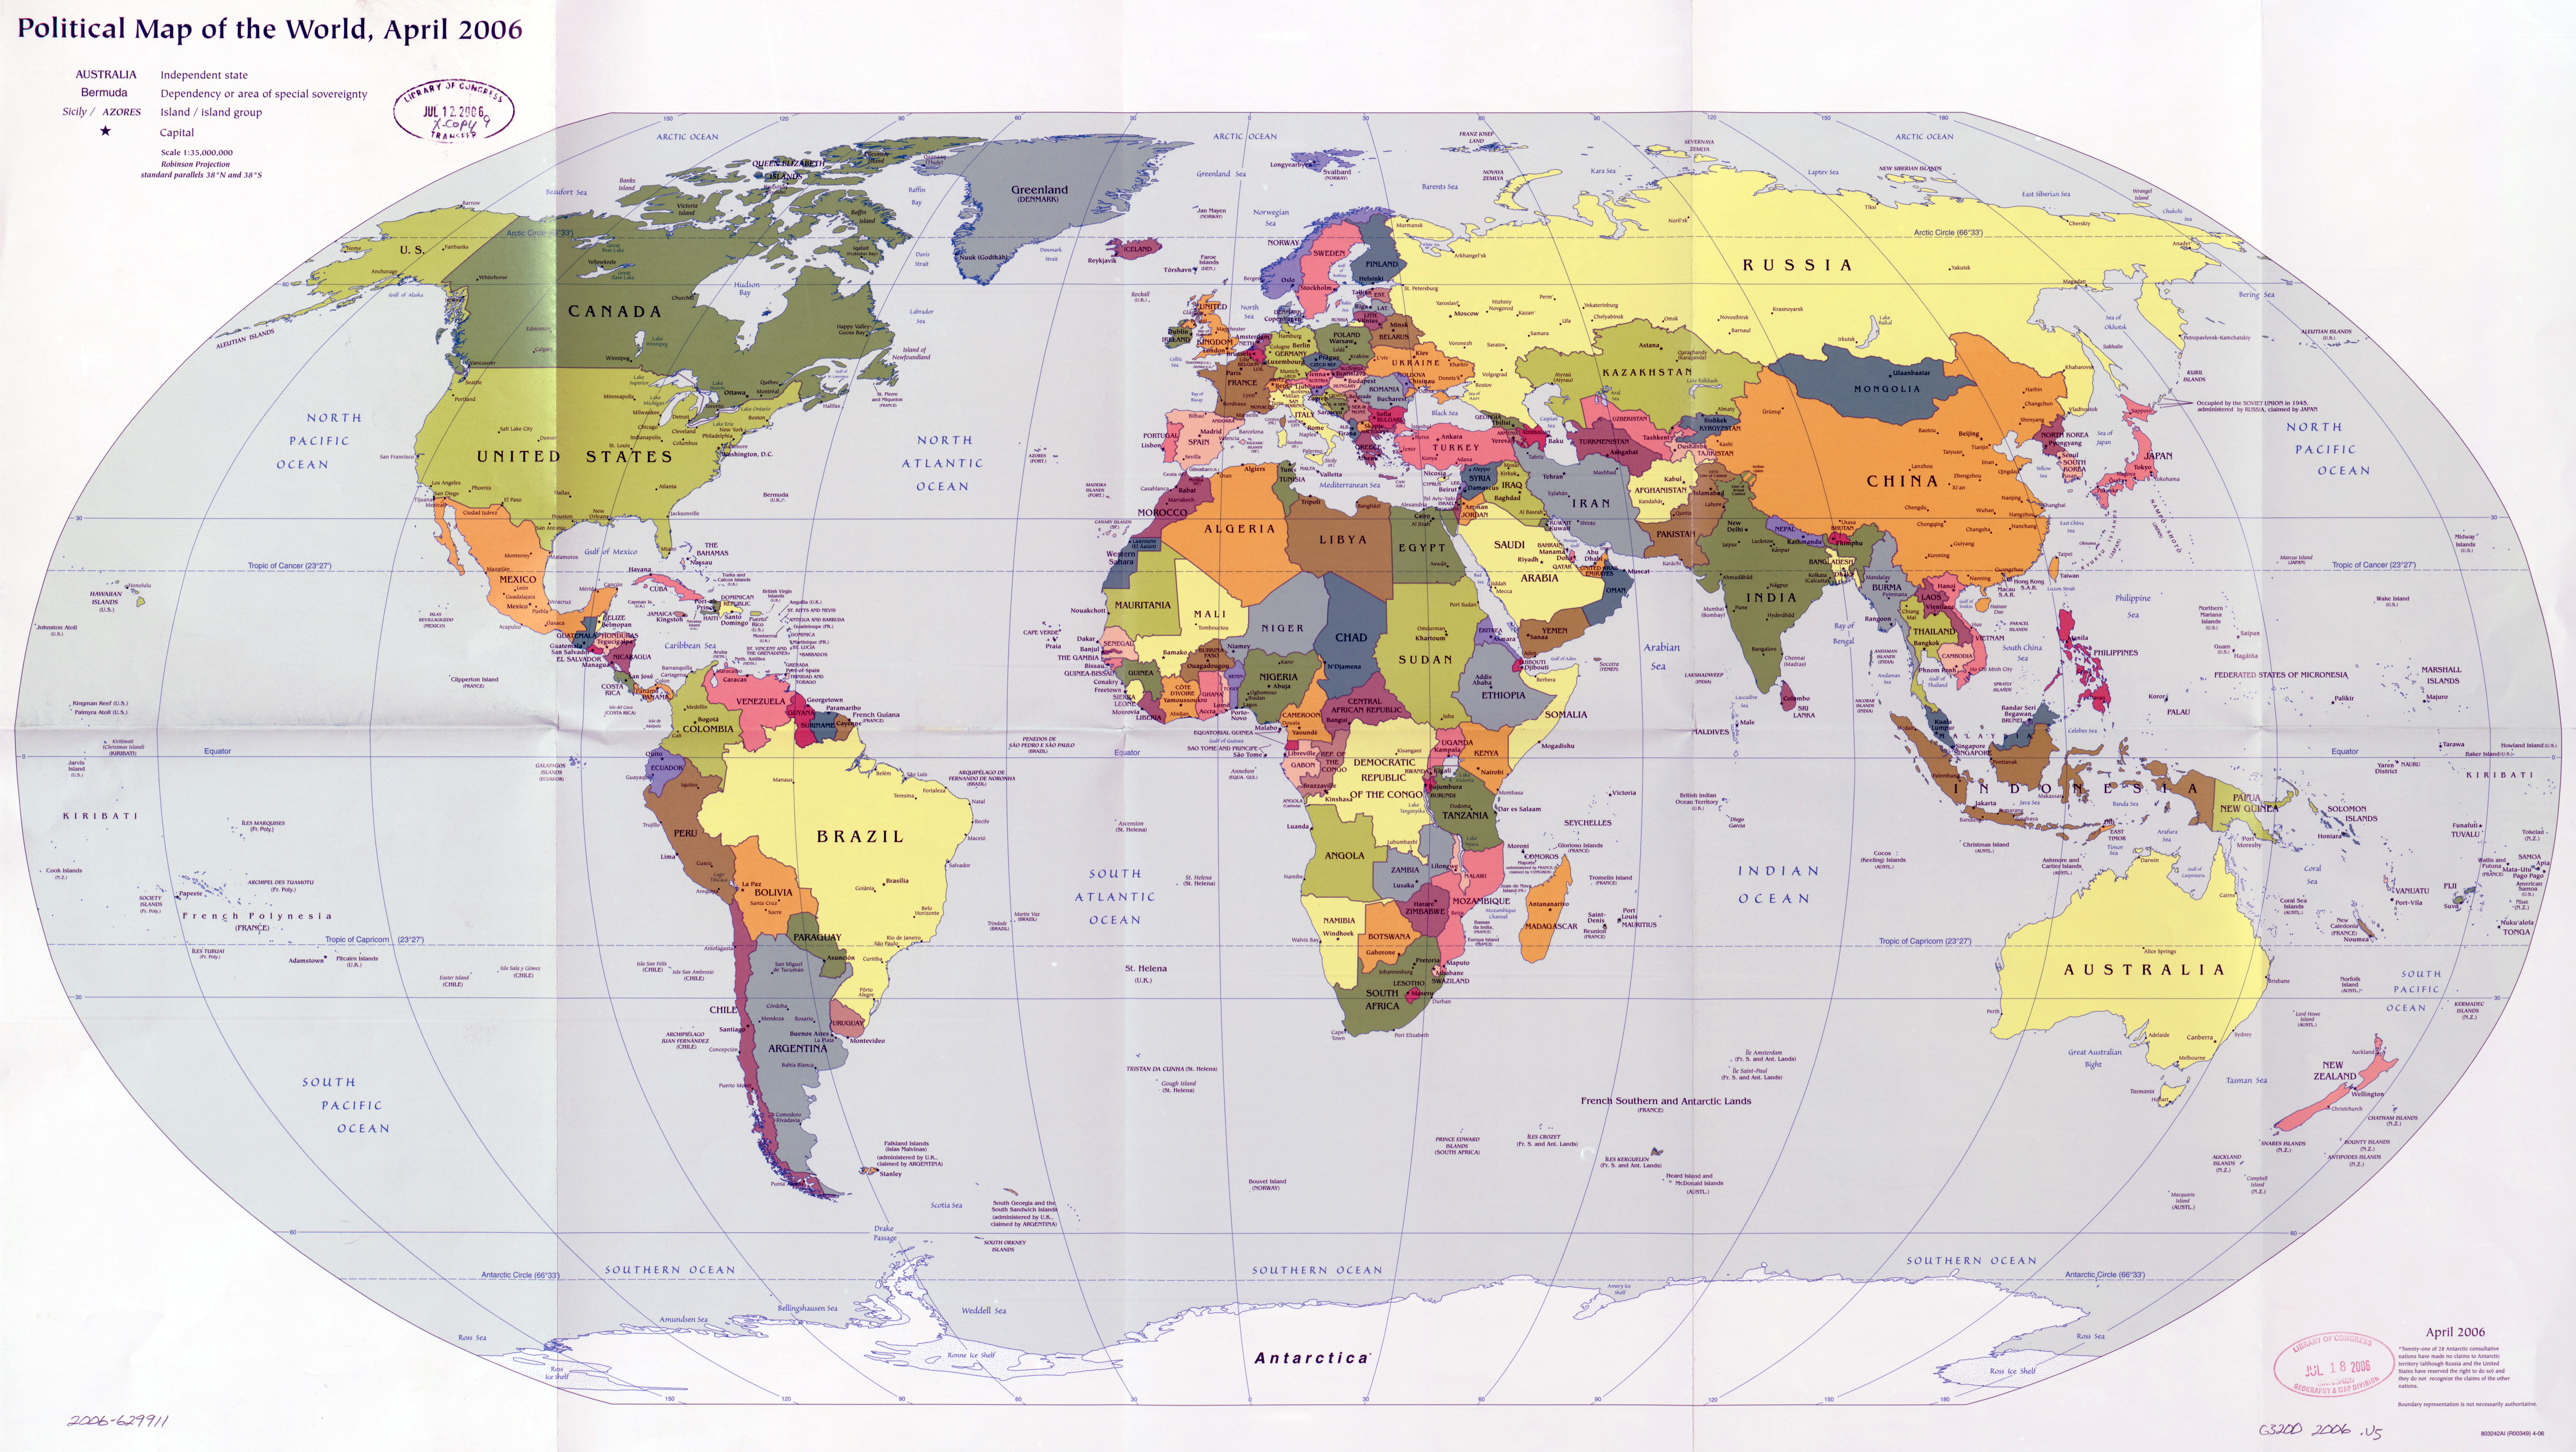 Large scale political map of the world with major cities and large scale political map of the world with major cities and capitals 2006 gumiabroncs Choice Image